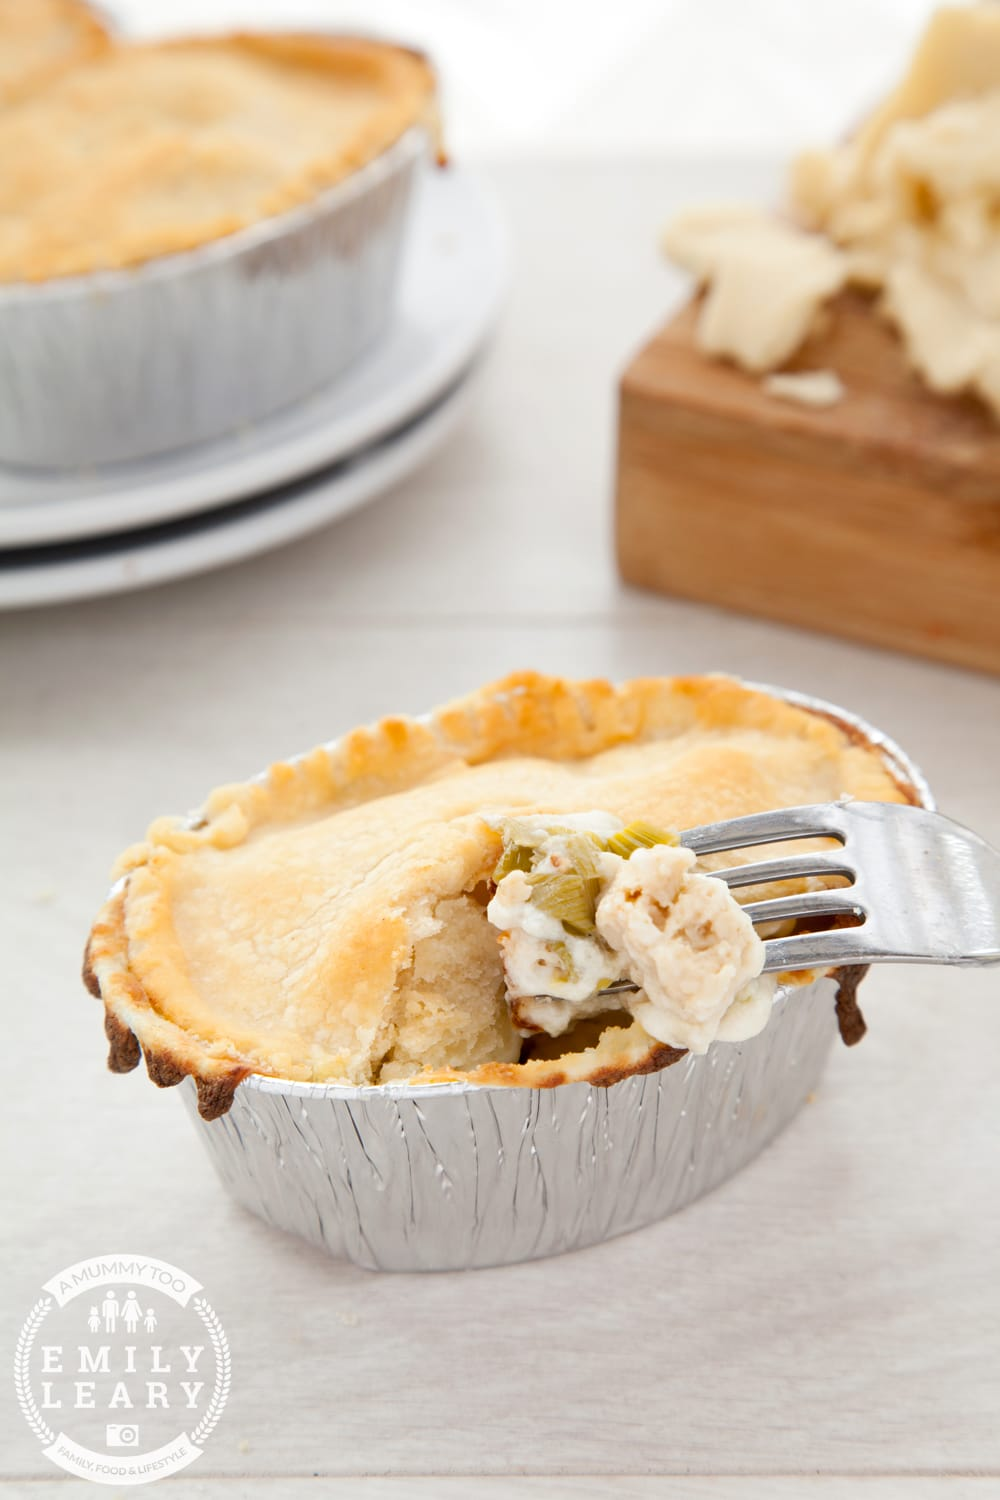 Gluten-free, vegetarian chicken-less pot pies with leeks, peas and a creamy sauce